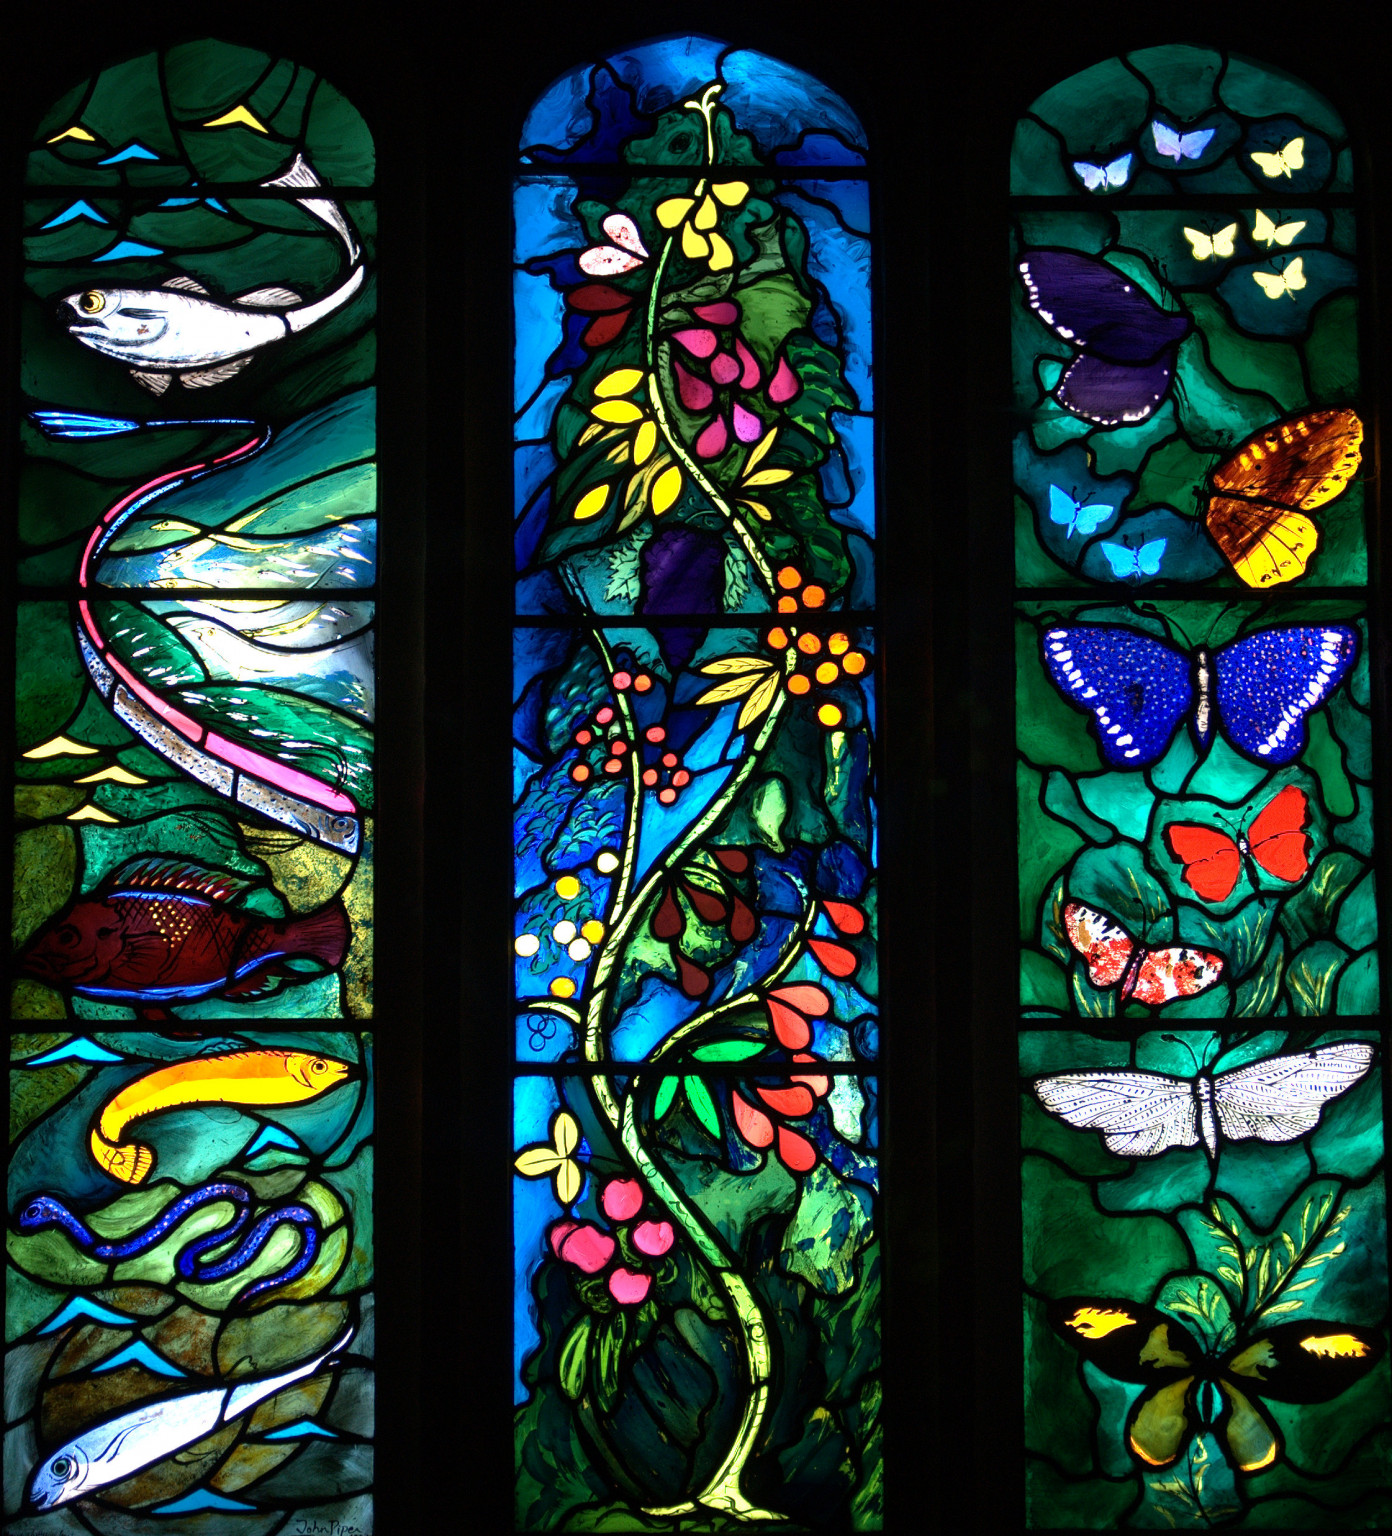 Stained glass window at All Saints Church, Farnborough, West Berkshire, featuring symbols of The  Resurrection: fishes; tree of life; butterflies. Designed by John Piper and made by Joseph Nuttgens.